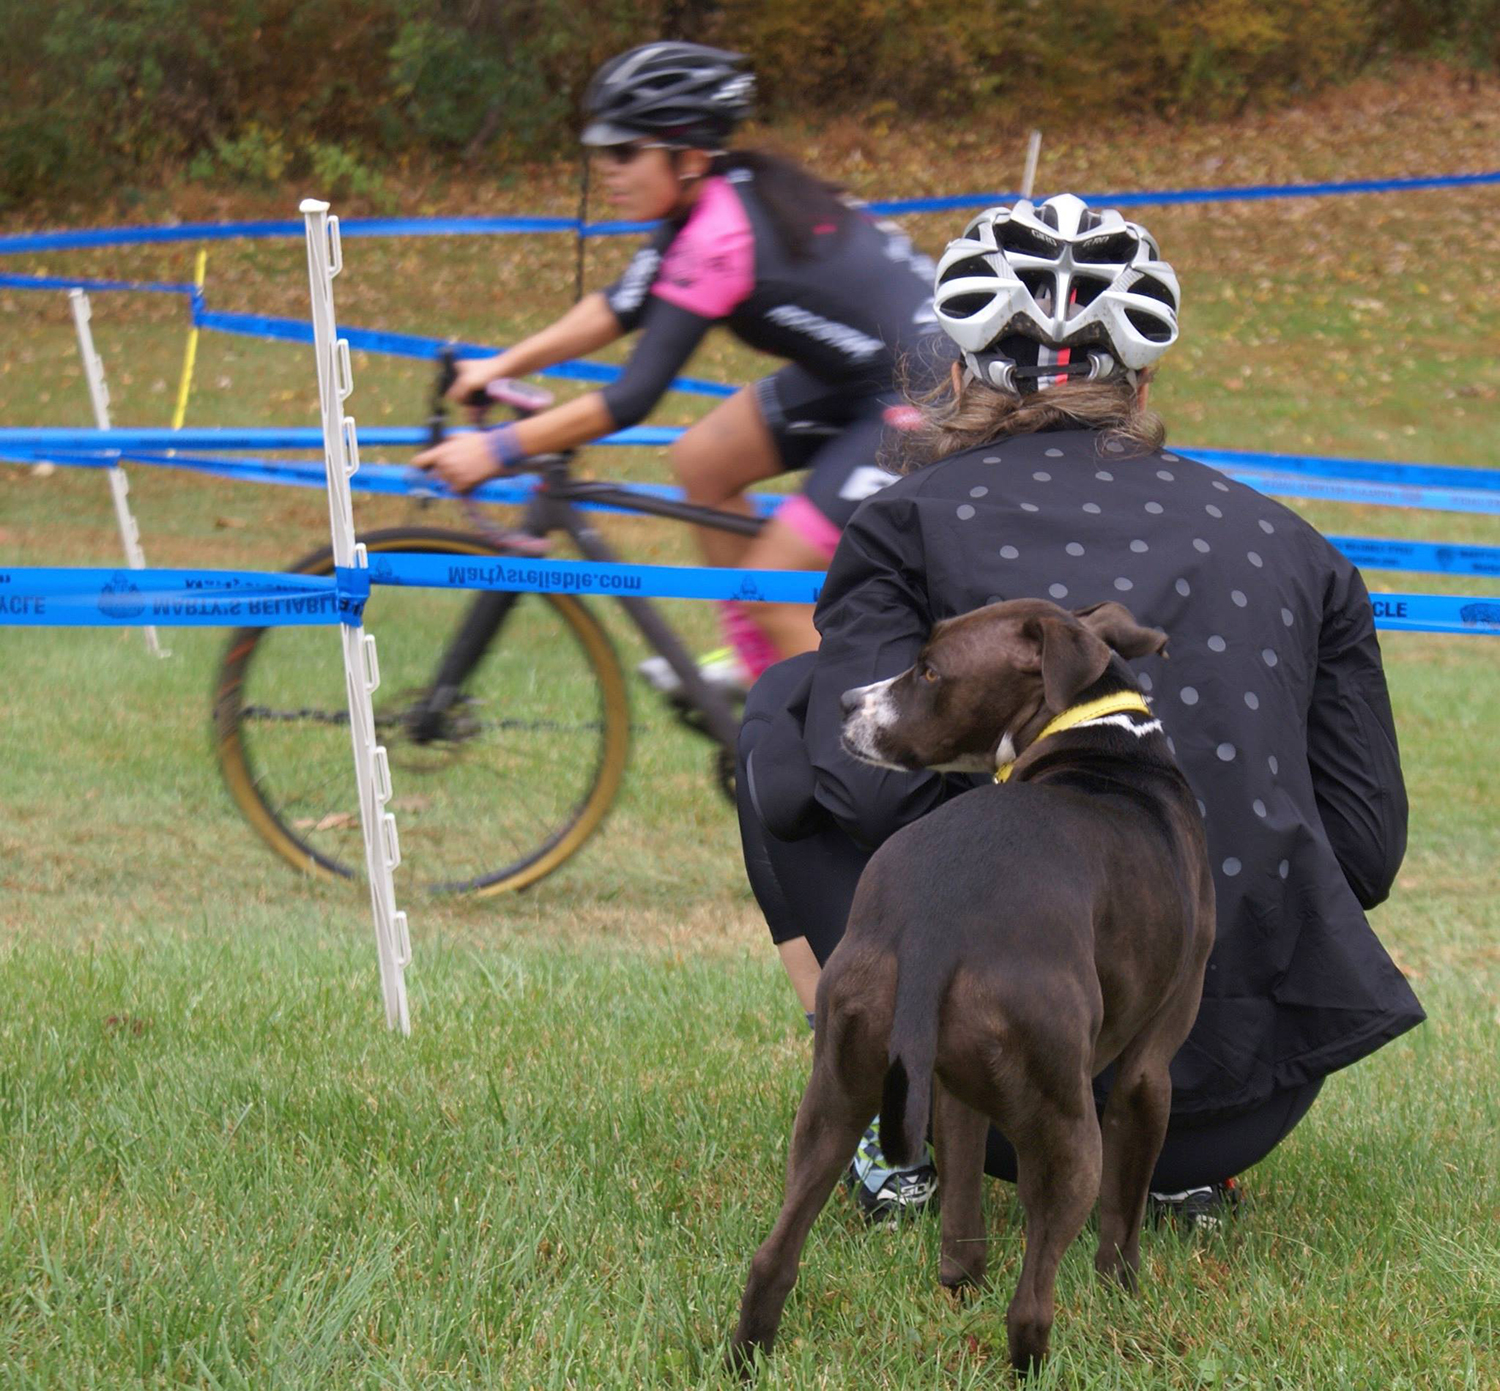 Coach Tara keeping an eye on a CRCA racer. Jessie (coach's pooch) is covering the action elsewhere.